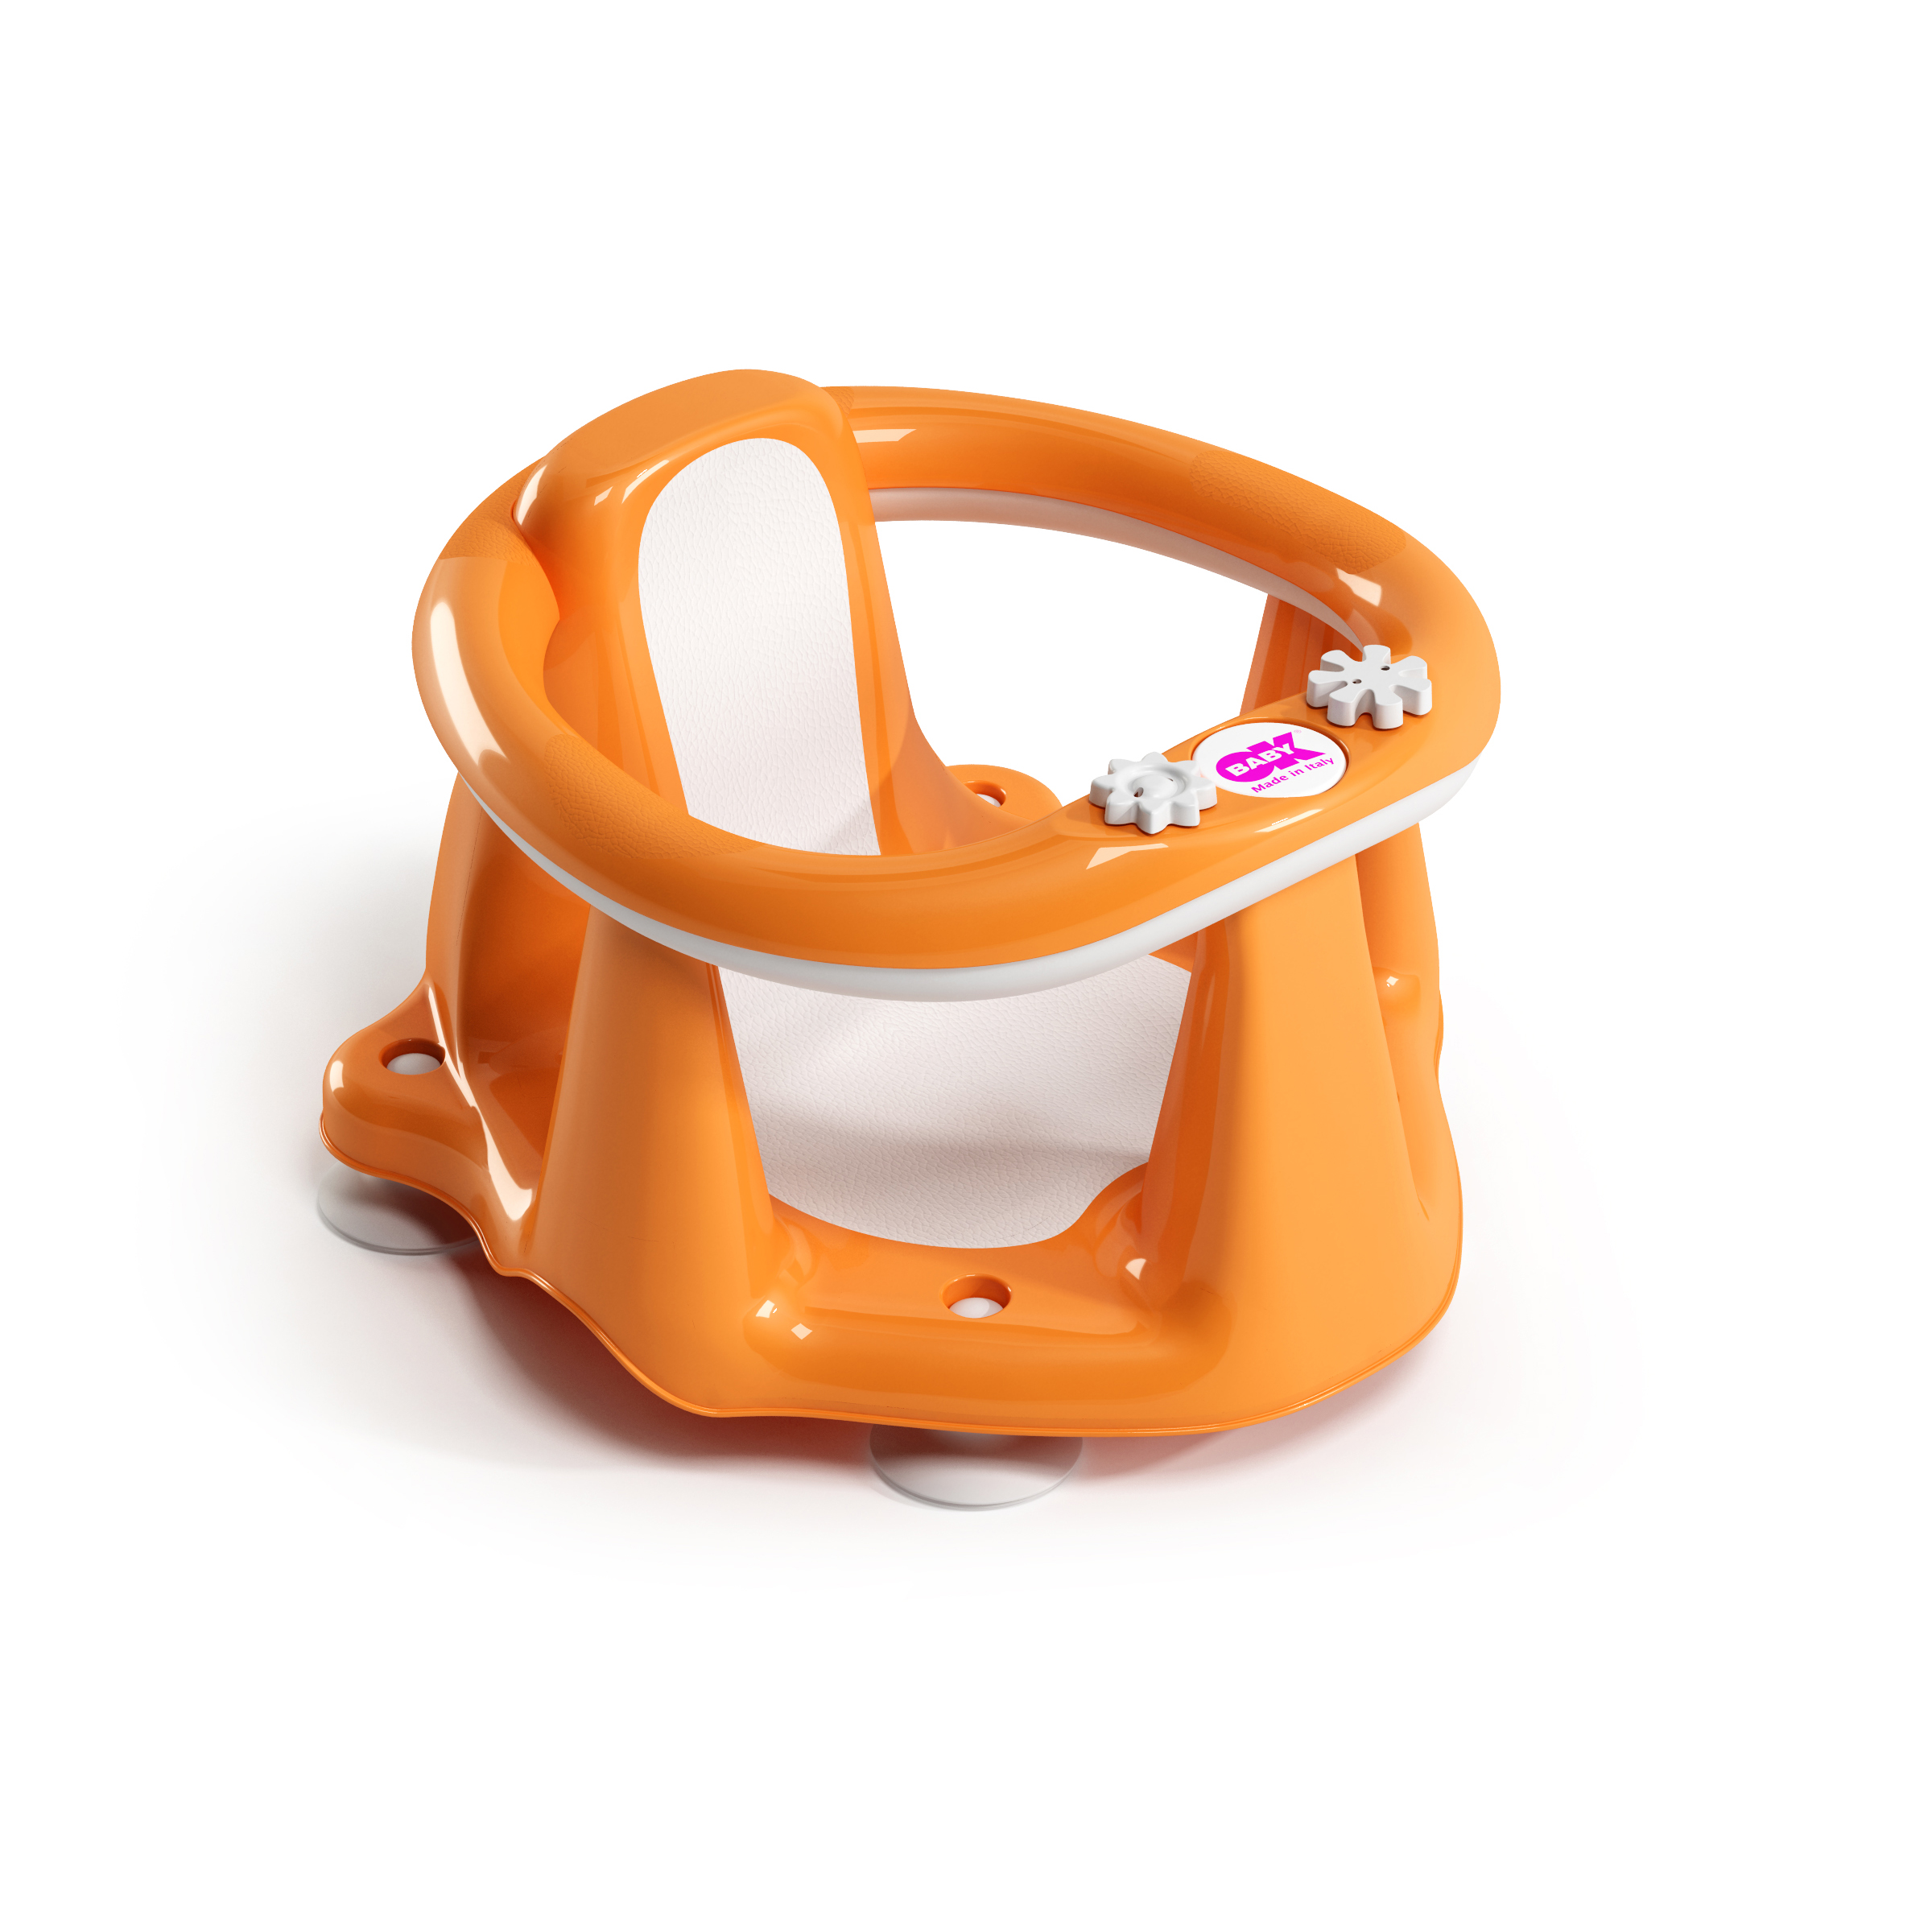 Flipper Evolution siège de bain Orange  de OK Baby